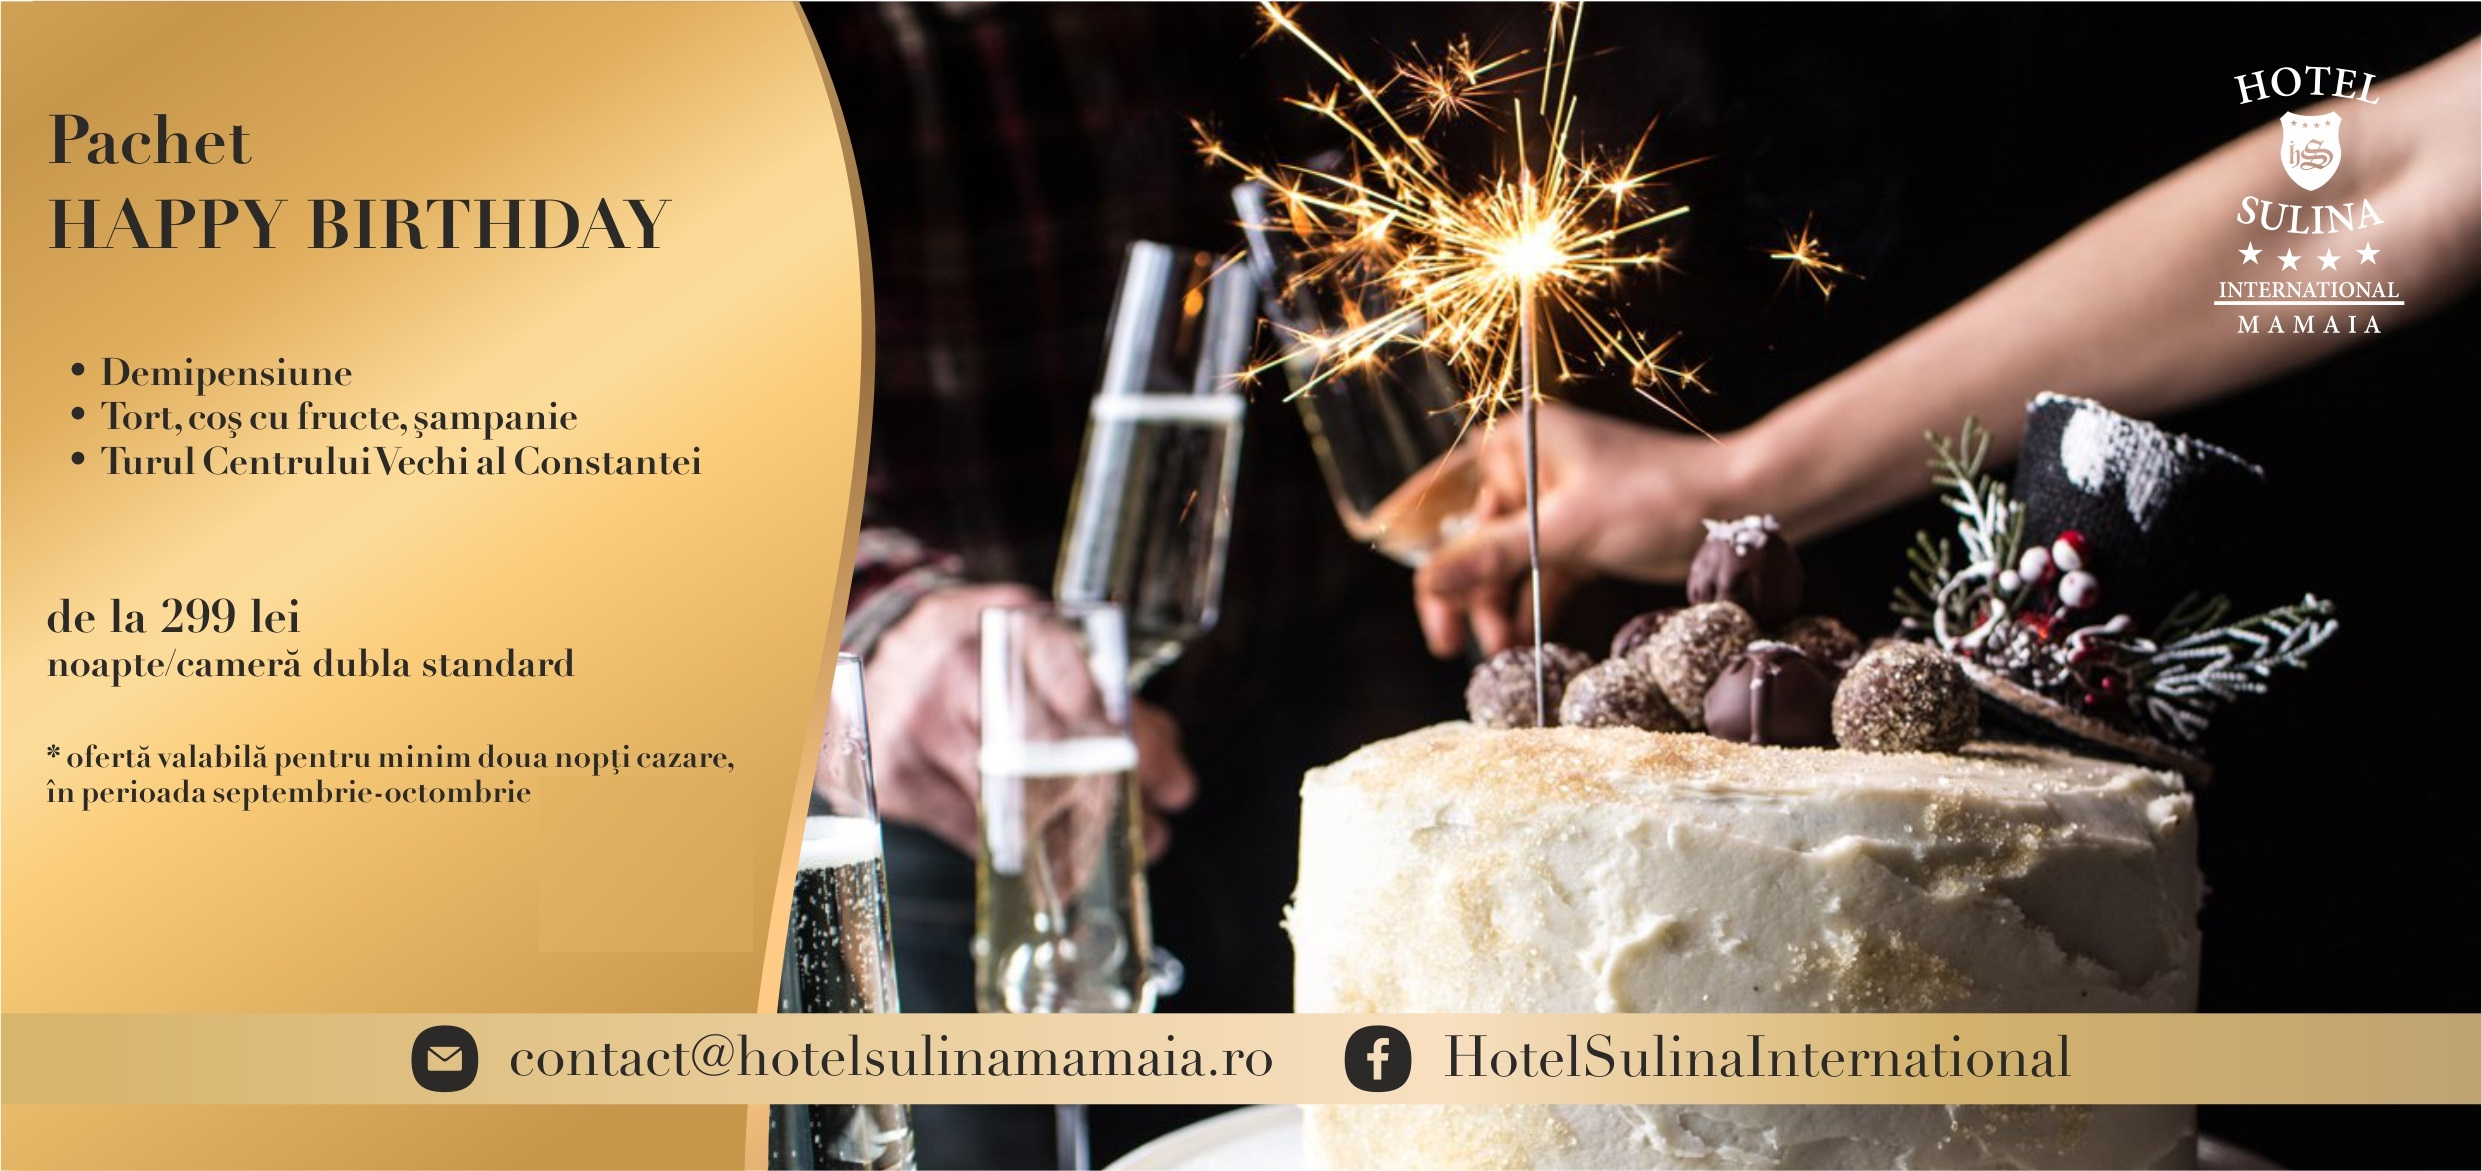 Pachet HAPPY BIRTHDAY  Hotel Sulina International - Mamaia